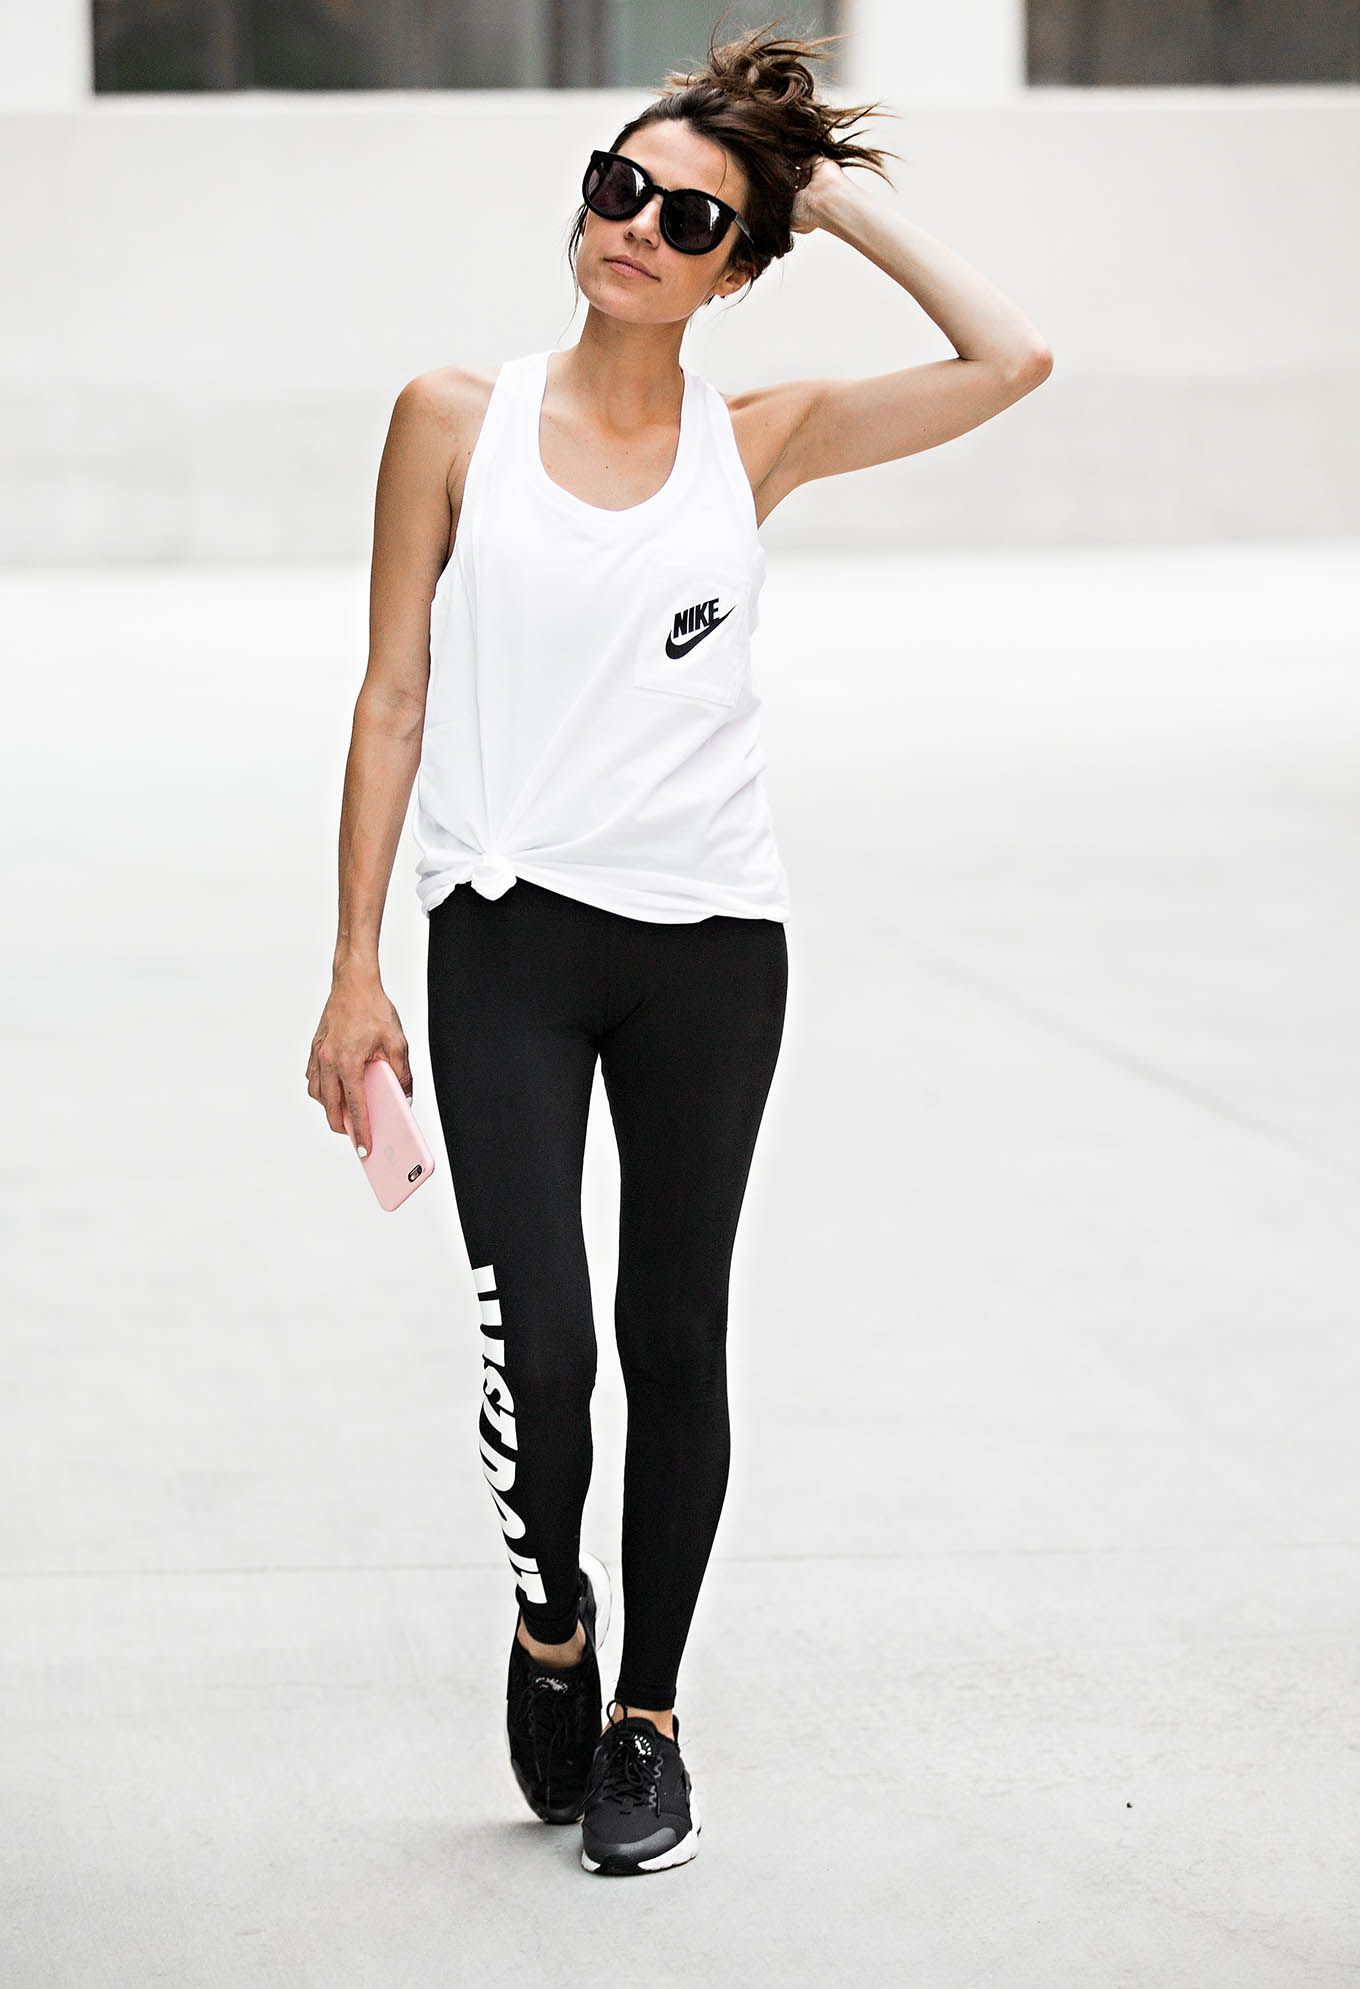 8f86ee1d68f14 Browse the best sporty street style: outfit ideas and inspiration at  @Stylecaster | @hellofashblog's black-and-white nike separates